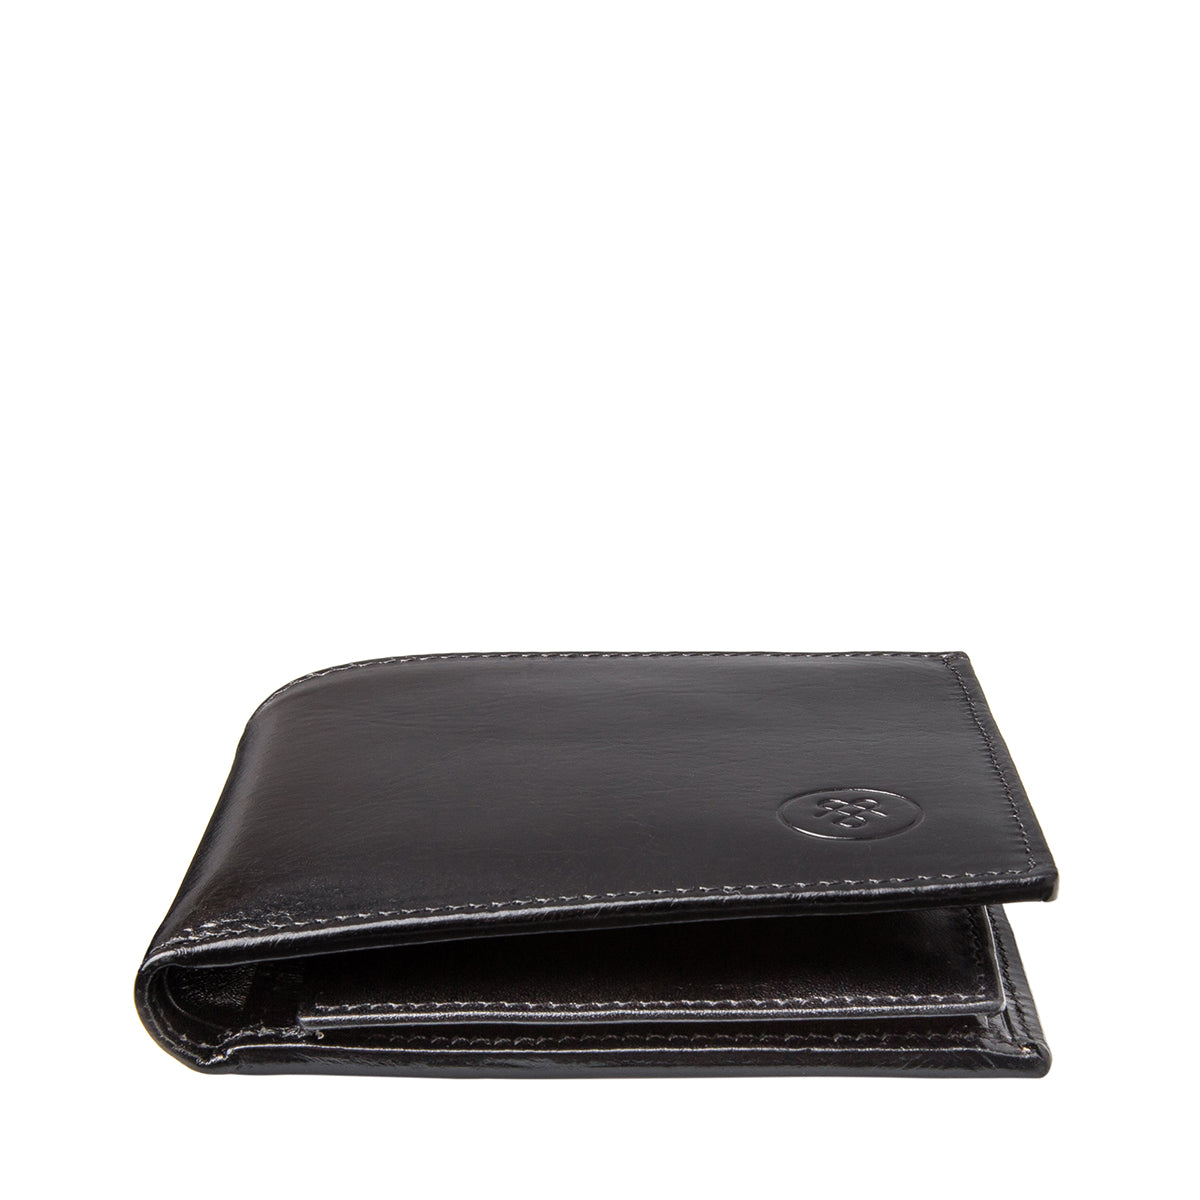 Image 6 of the 'Ticciano' Black Veg-Tanned Leather Wallet with Coin Pocket